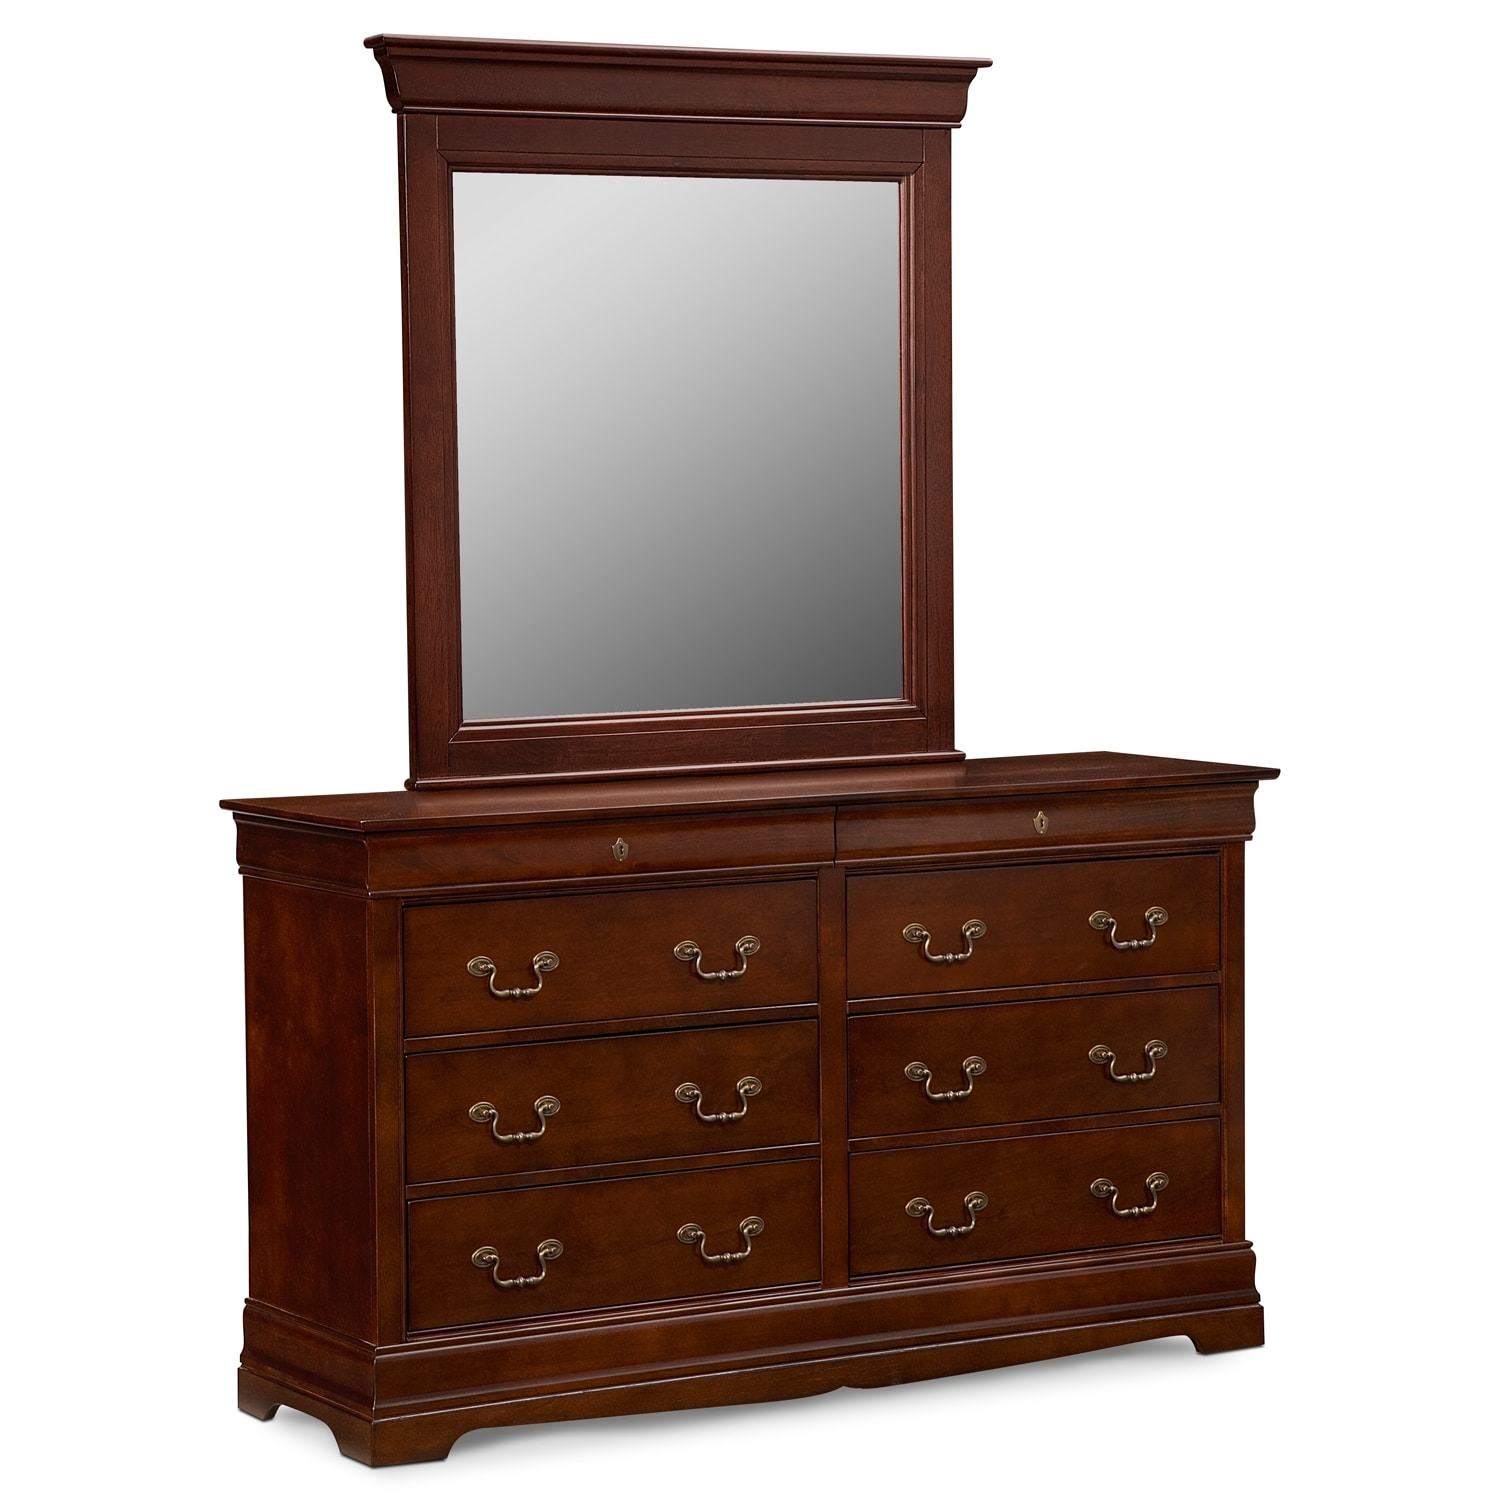 Kids Furniture - Neo Classic Dresser and Mirror - Cherry